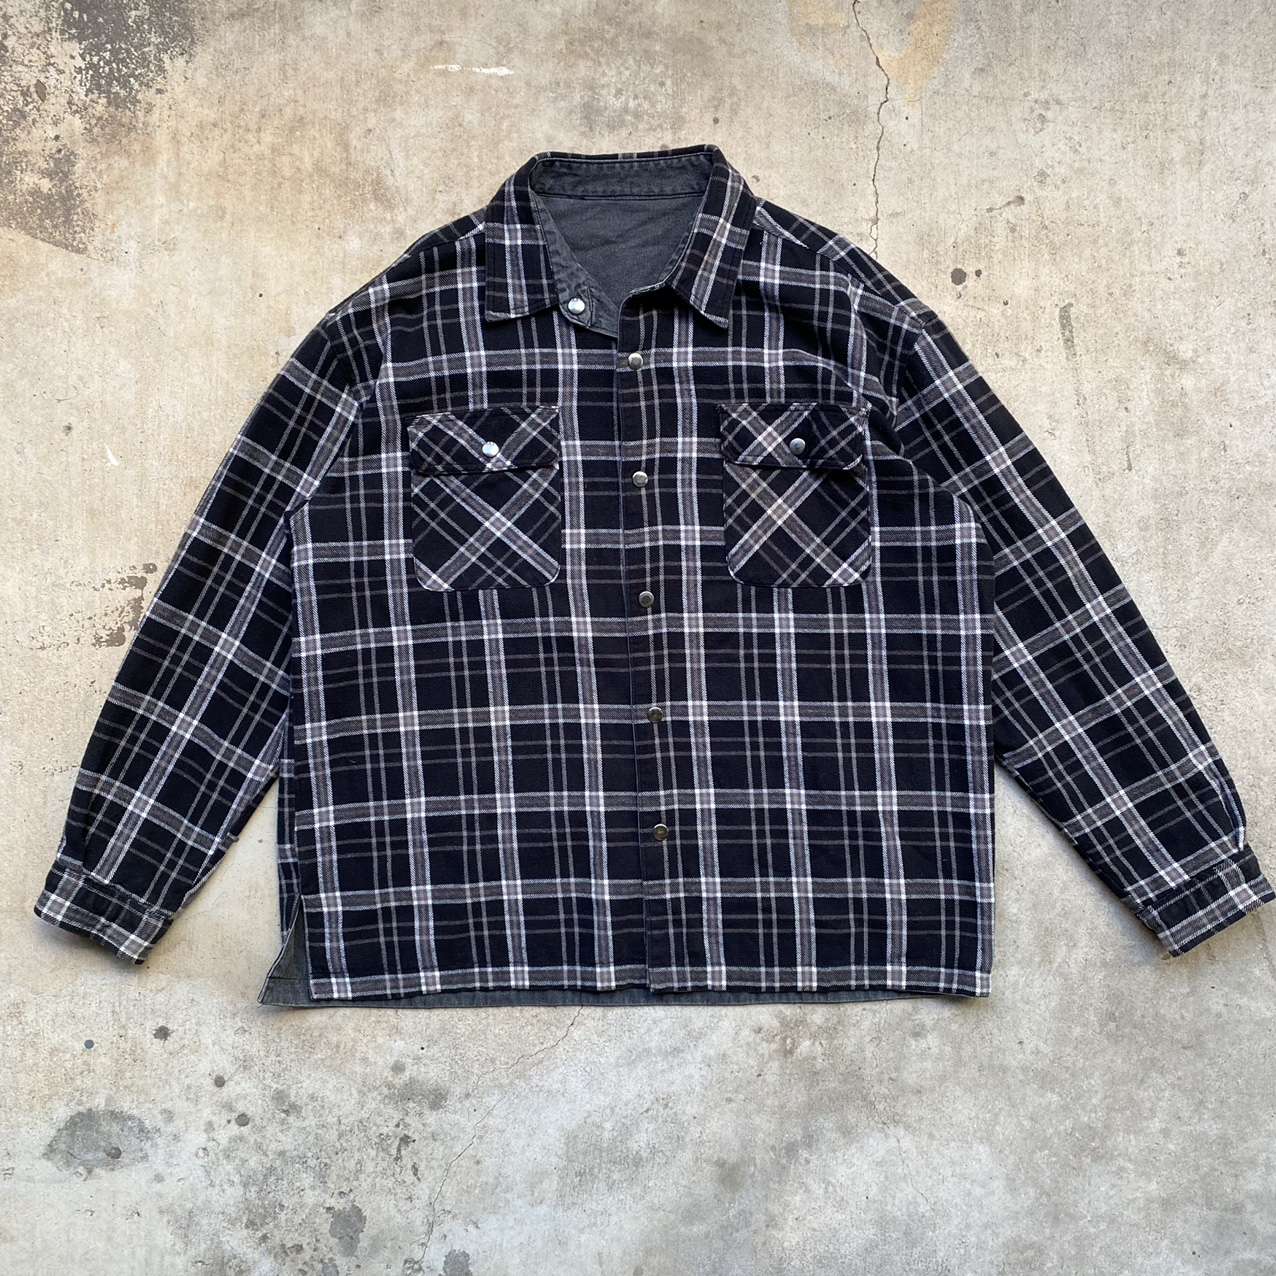 Product Image 1 - reversible flannel lined jacket size XL chest: